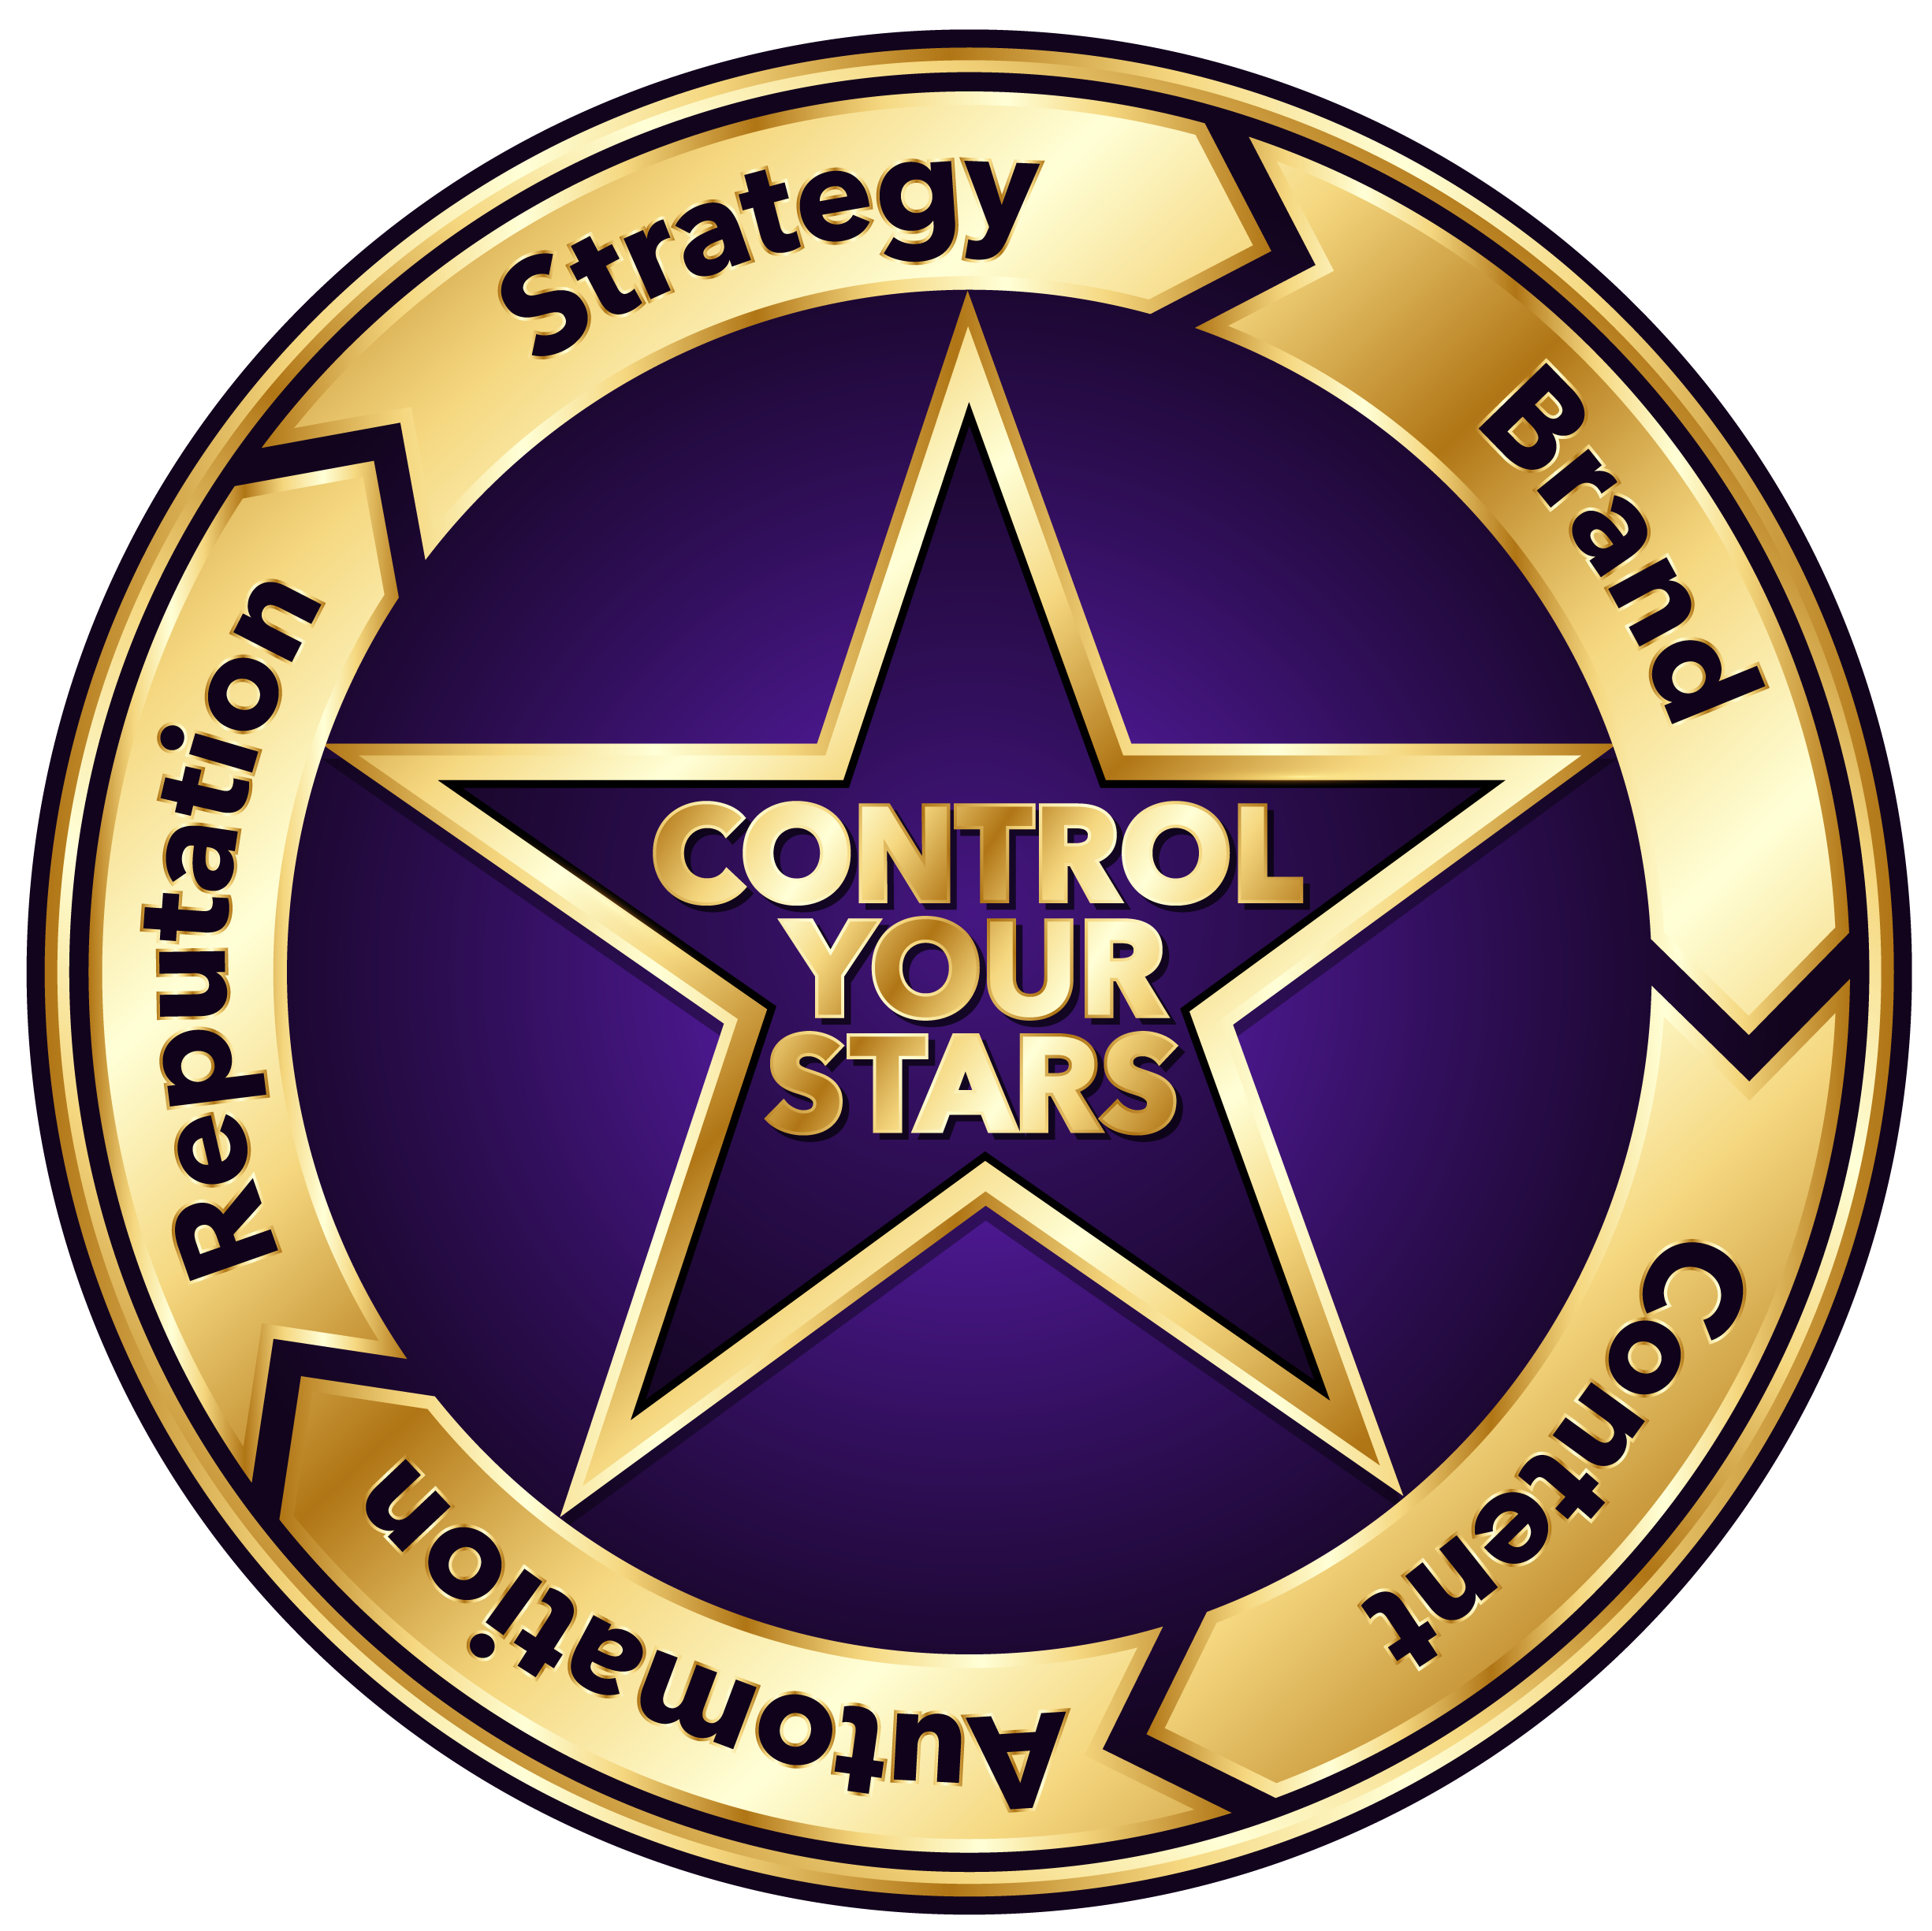 Control Your Stars Marketing Logo